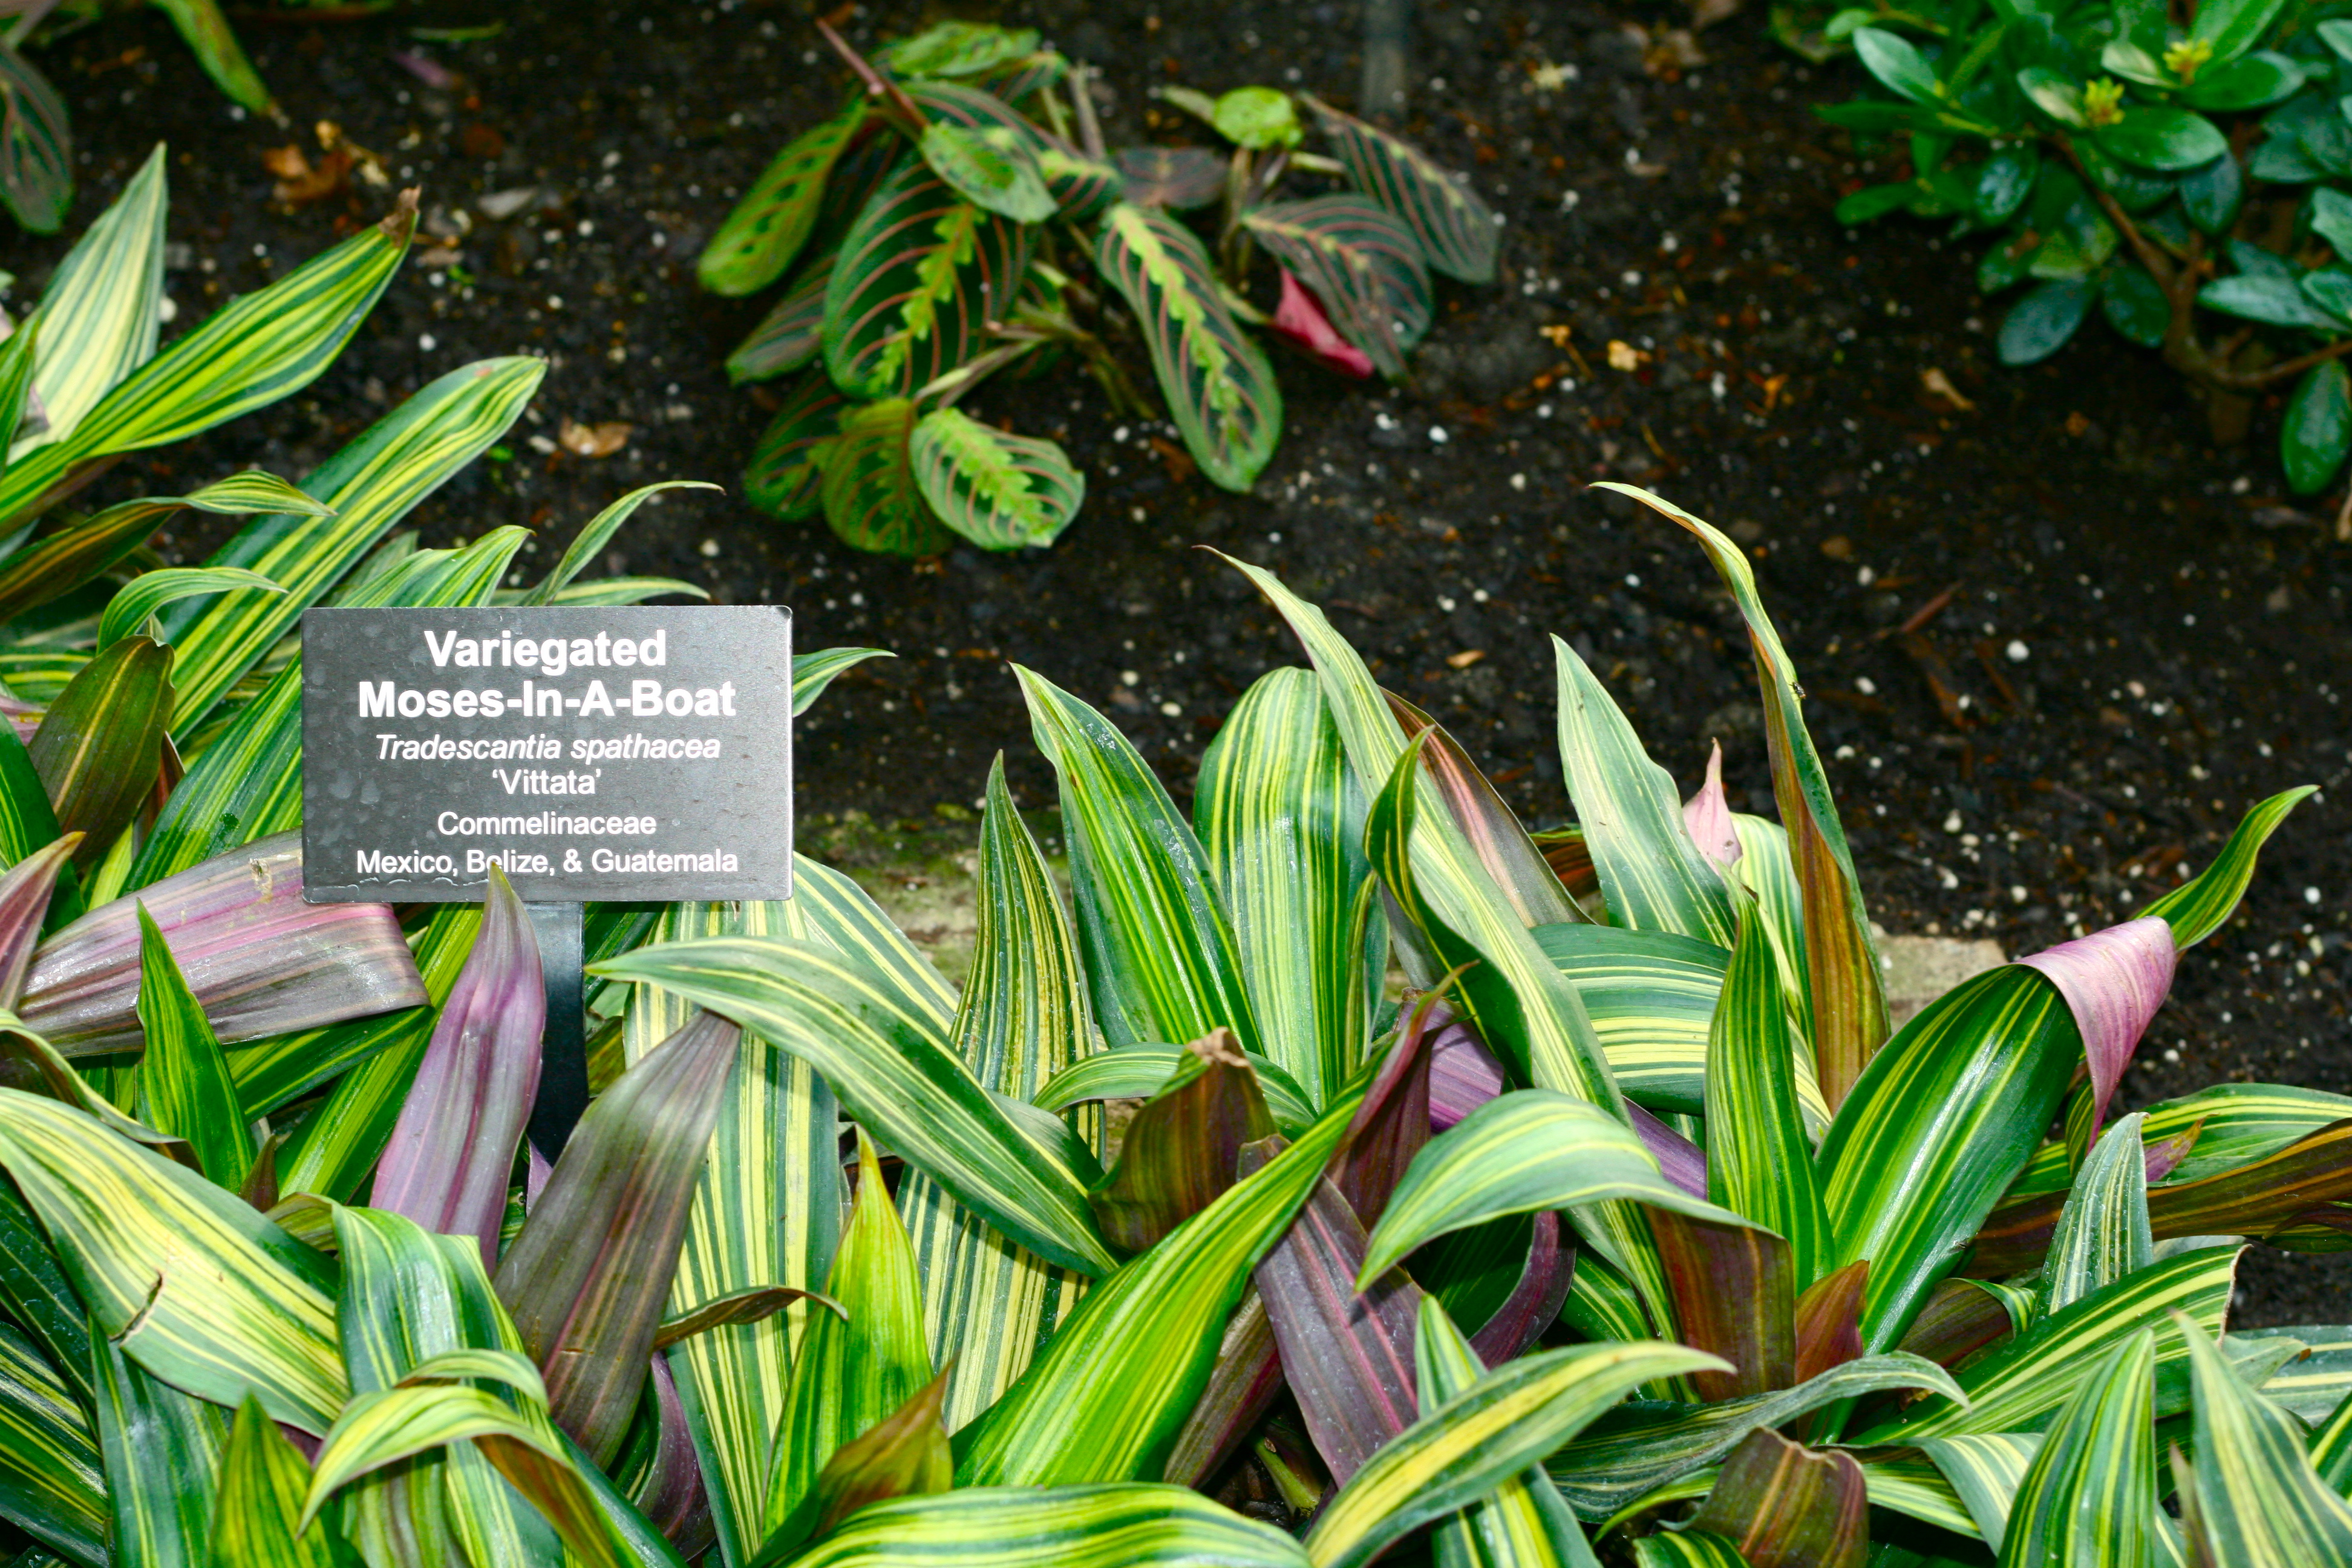 Places: Garfield Park Conservatory (by way of bizarre plant names)